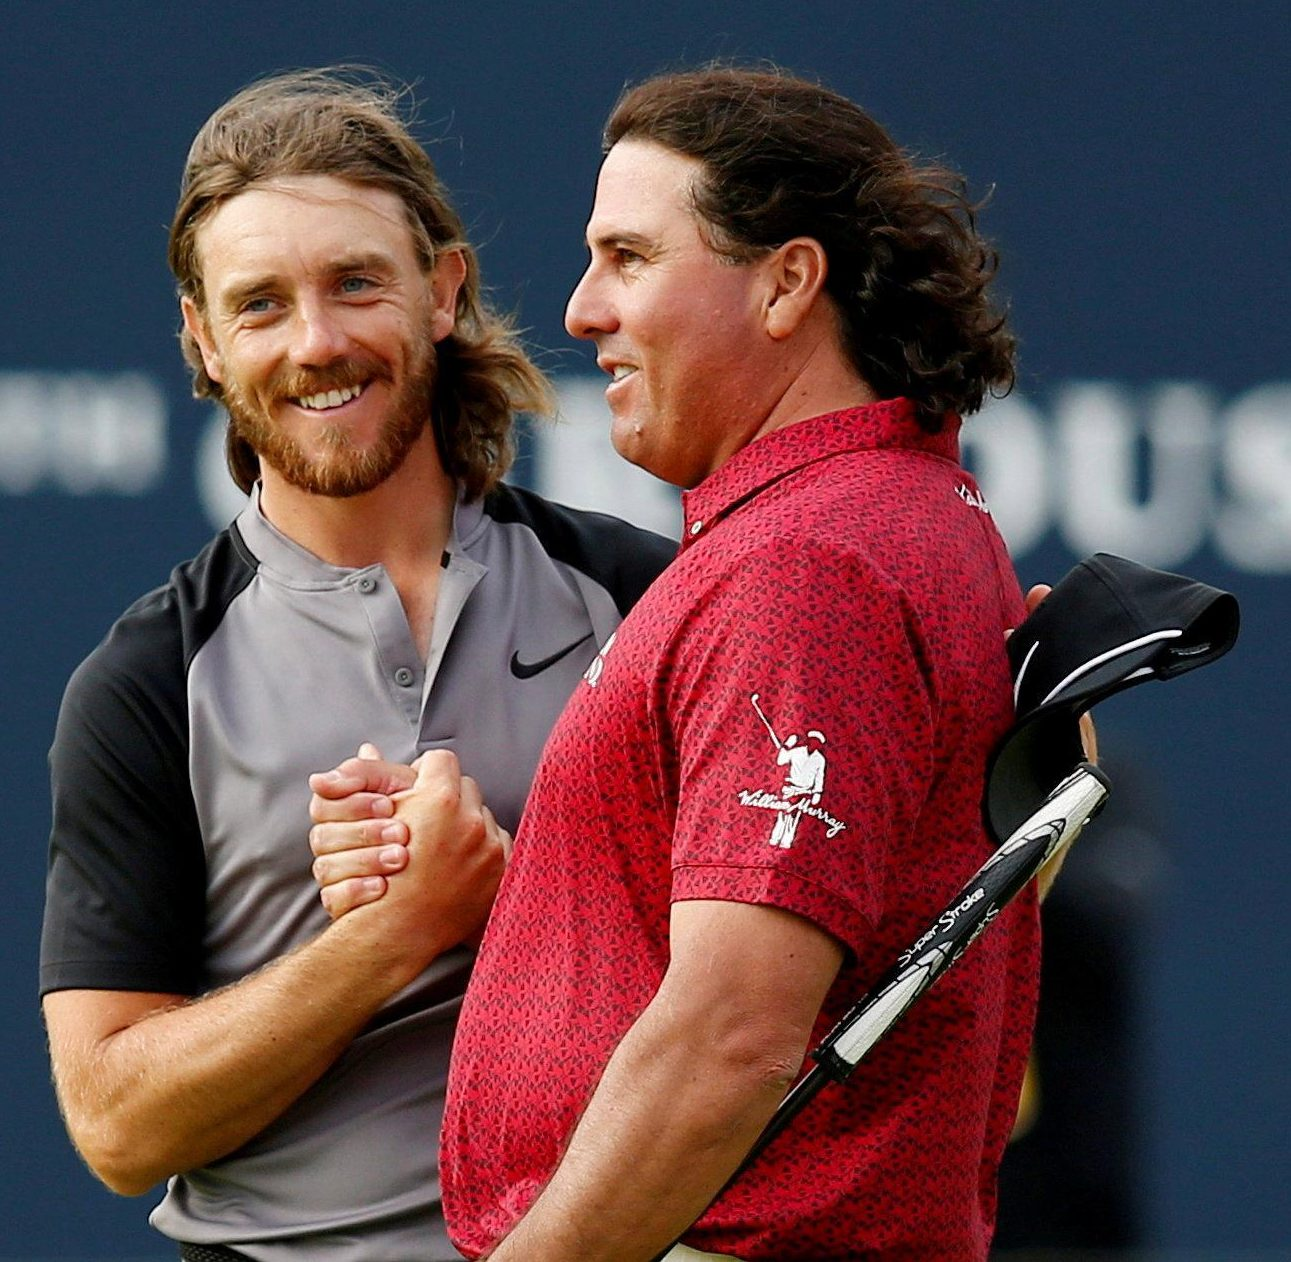 Tommy Fleetwood and Pat Perez are still in good spirits despite a poor day